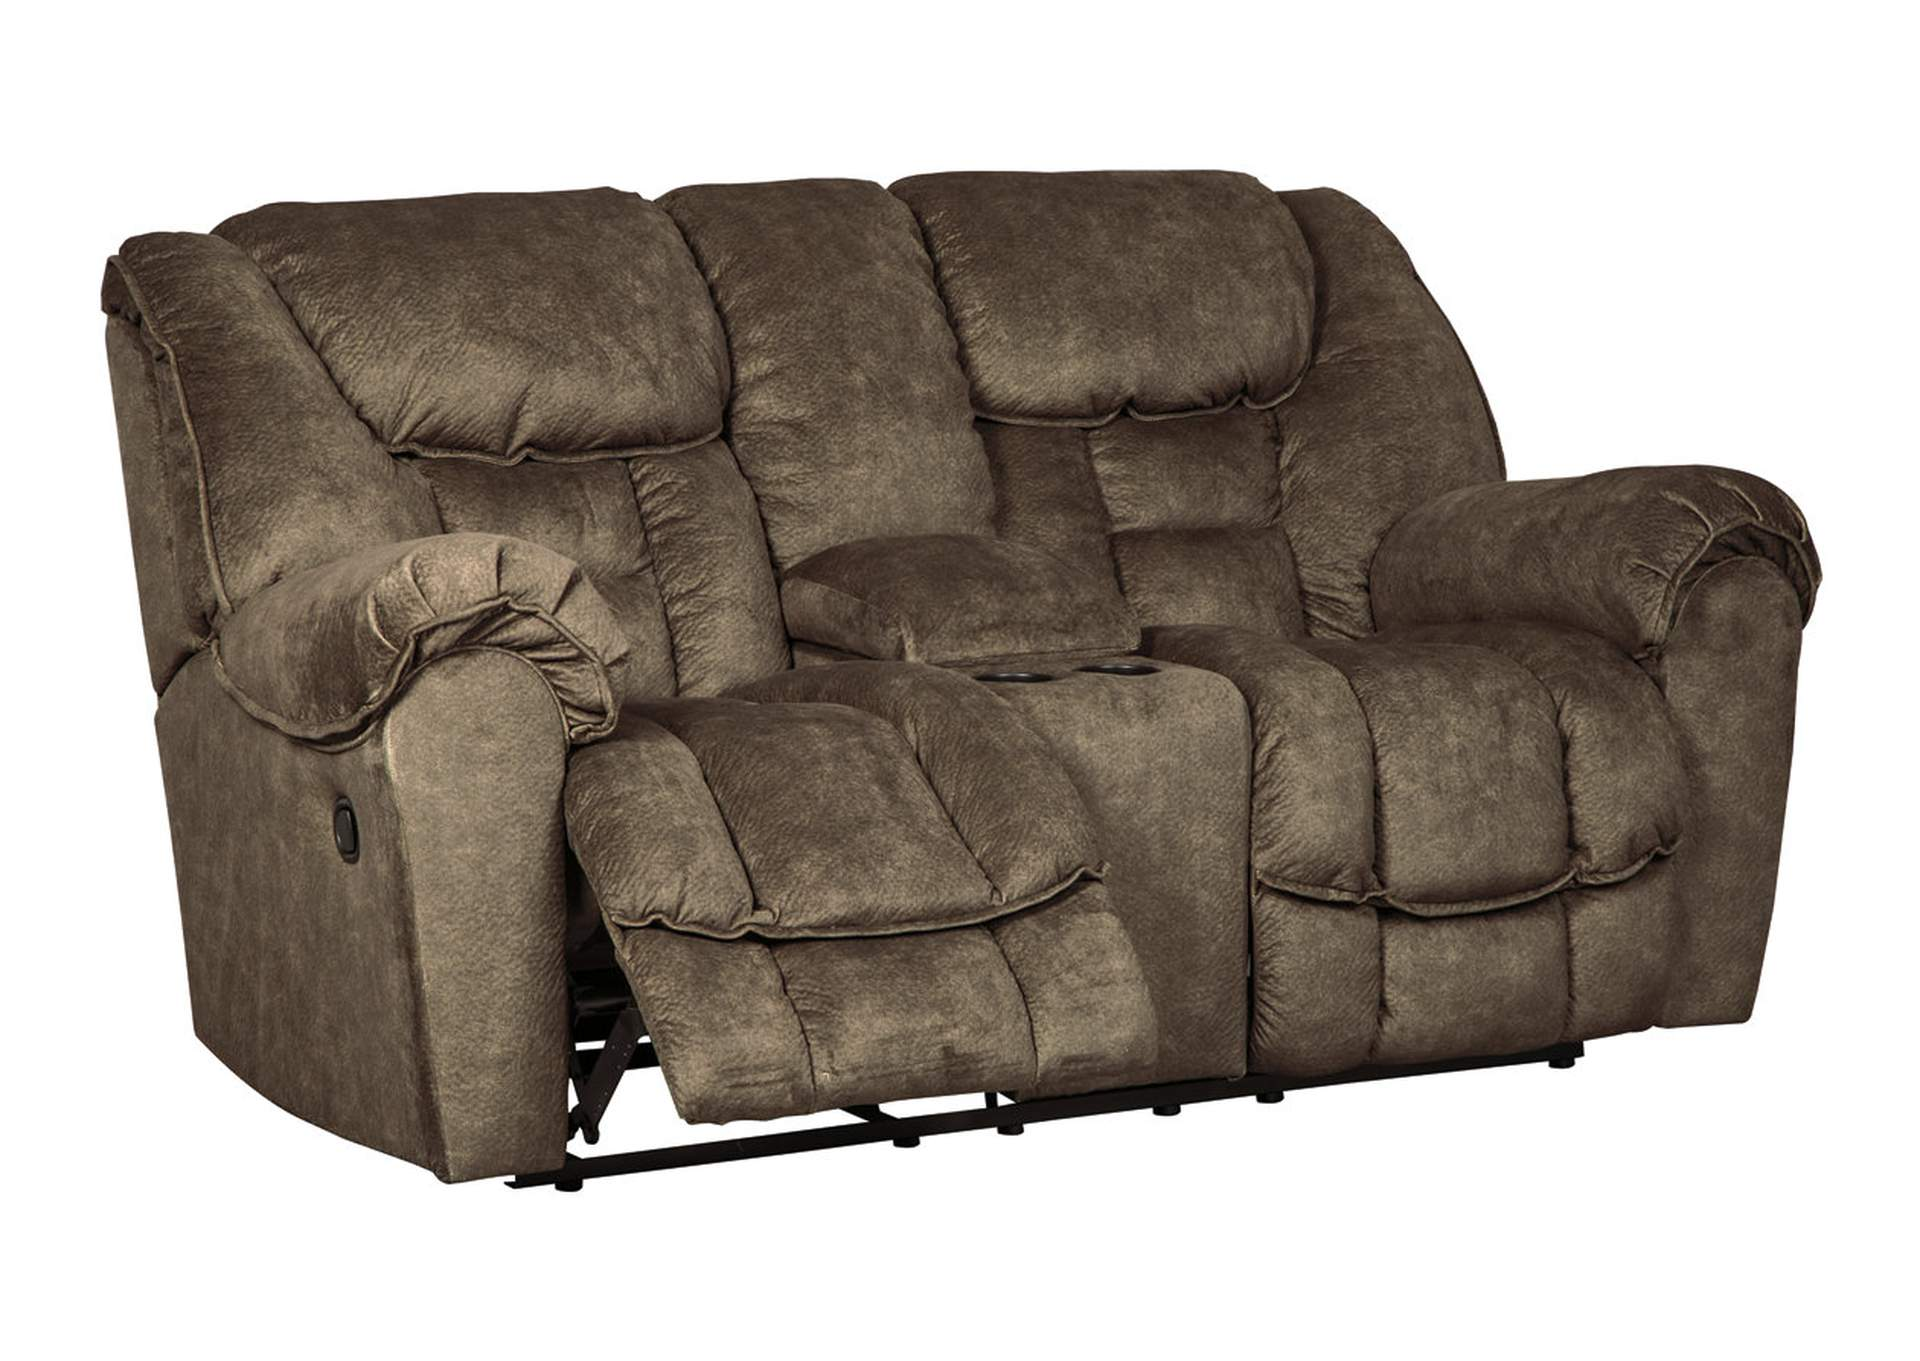 Capehorn Earth Double Reclining Loveseat w/Console,Signature Design By Ashley